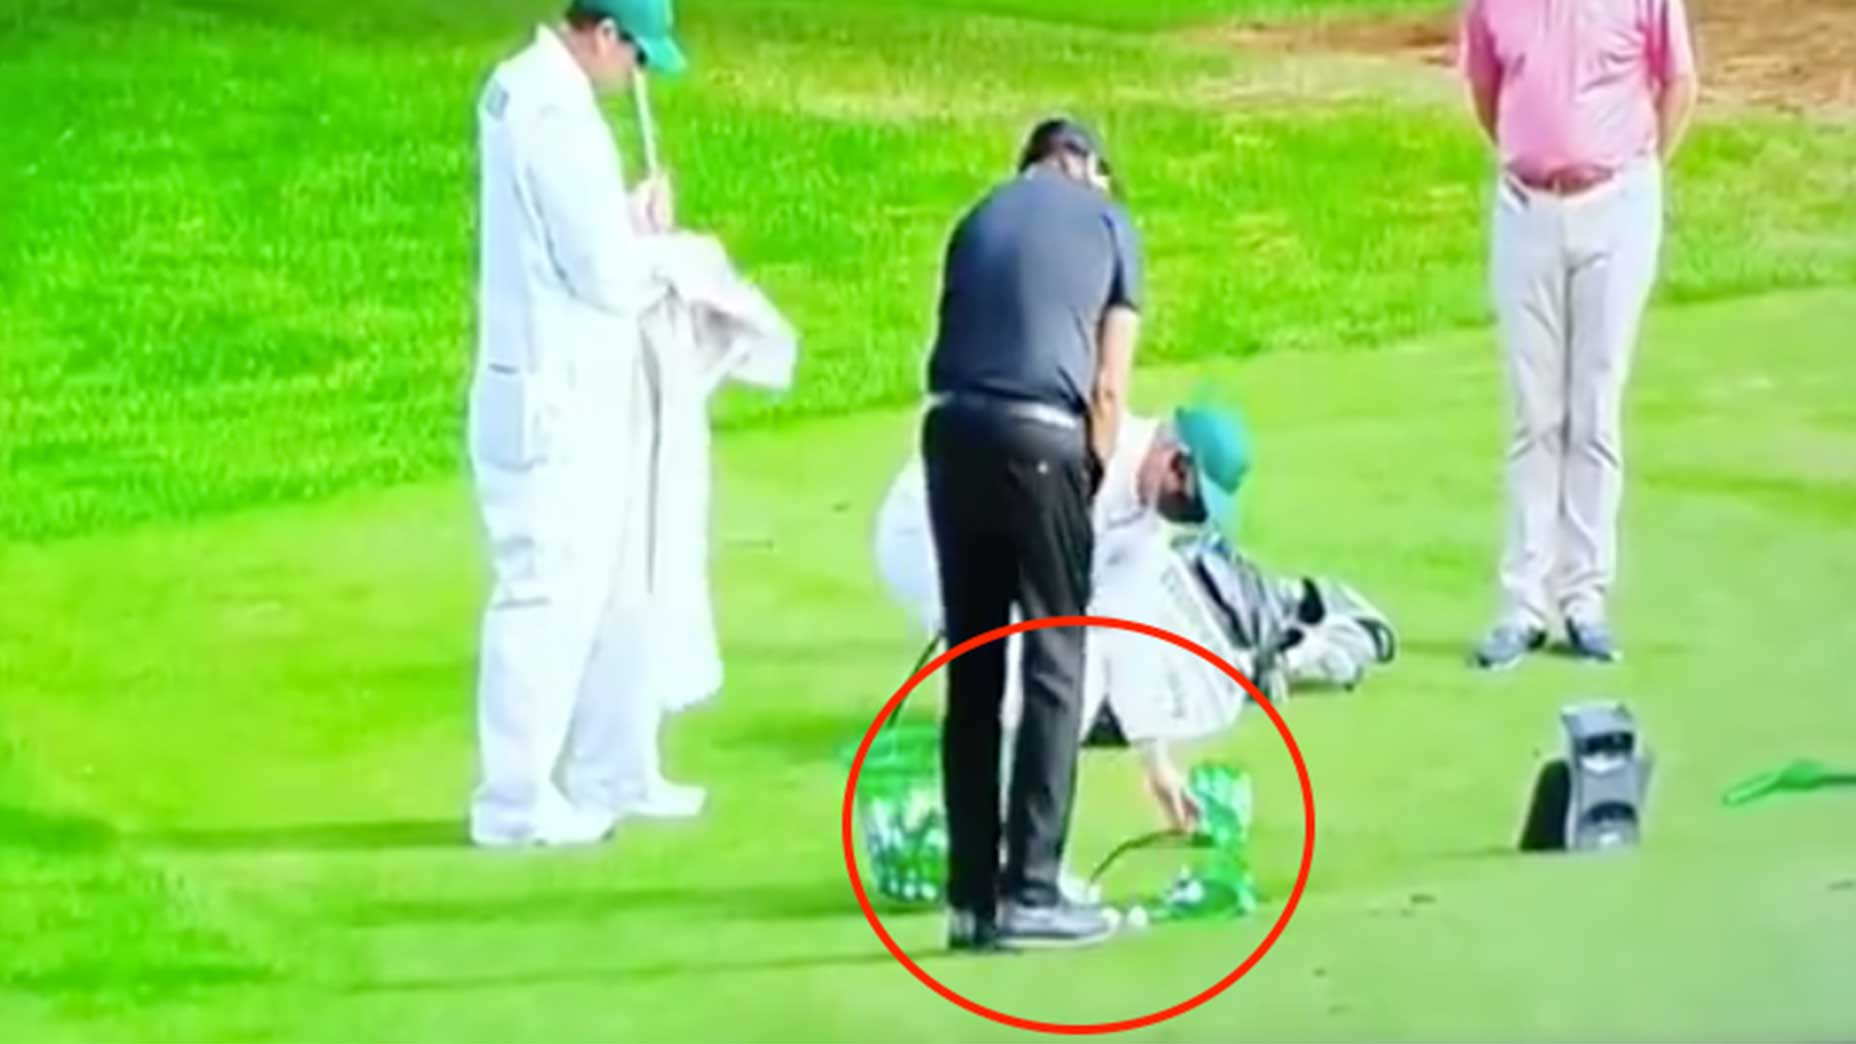 Augusta National's practice area has a secret gadget we never noticed before